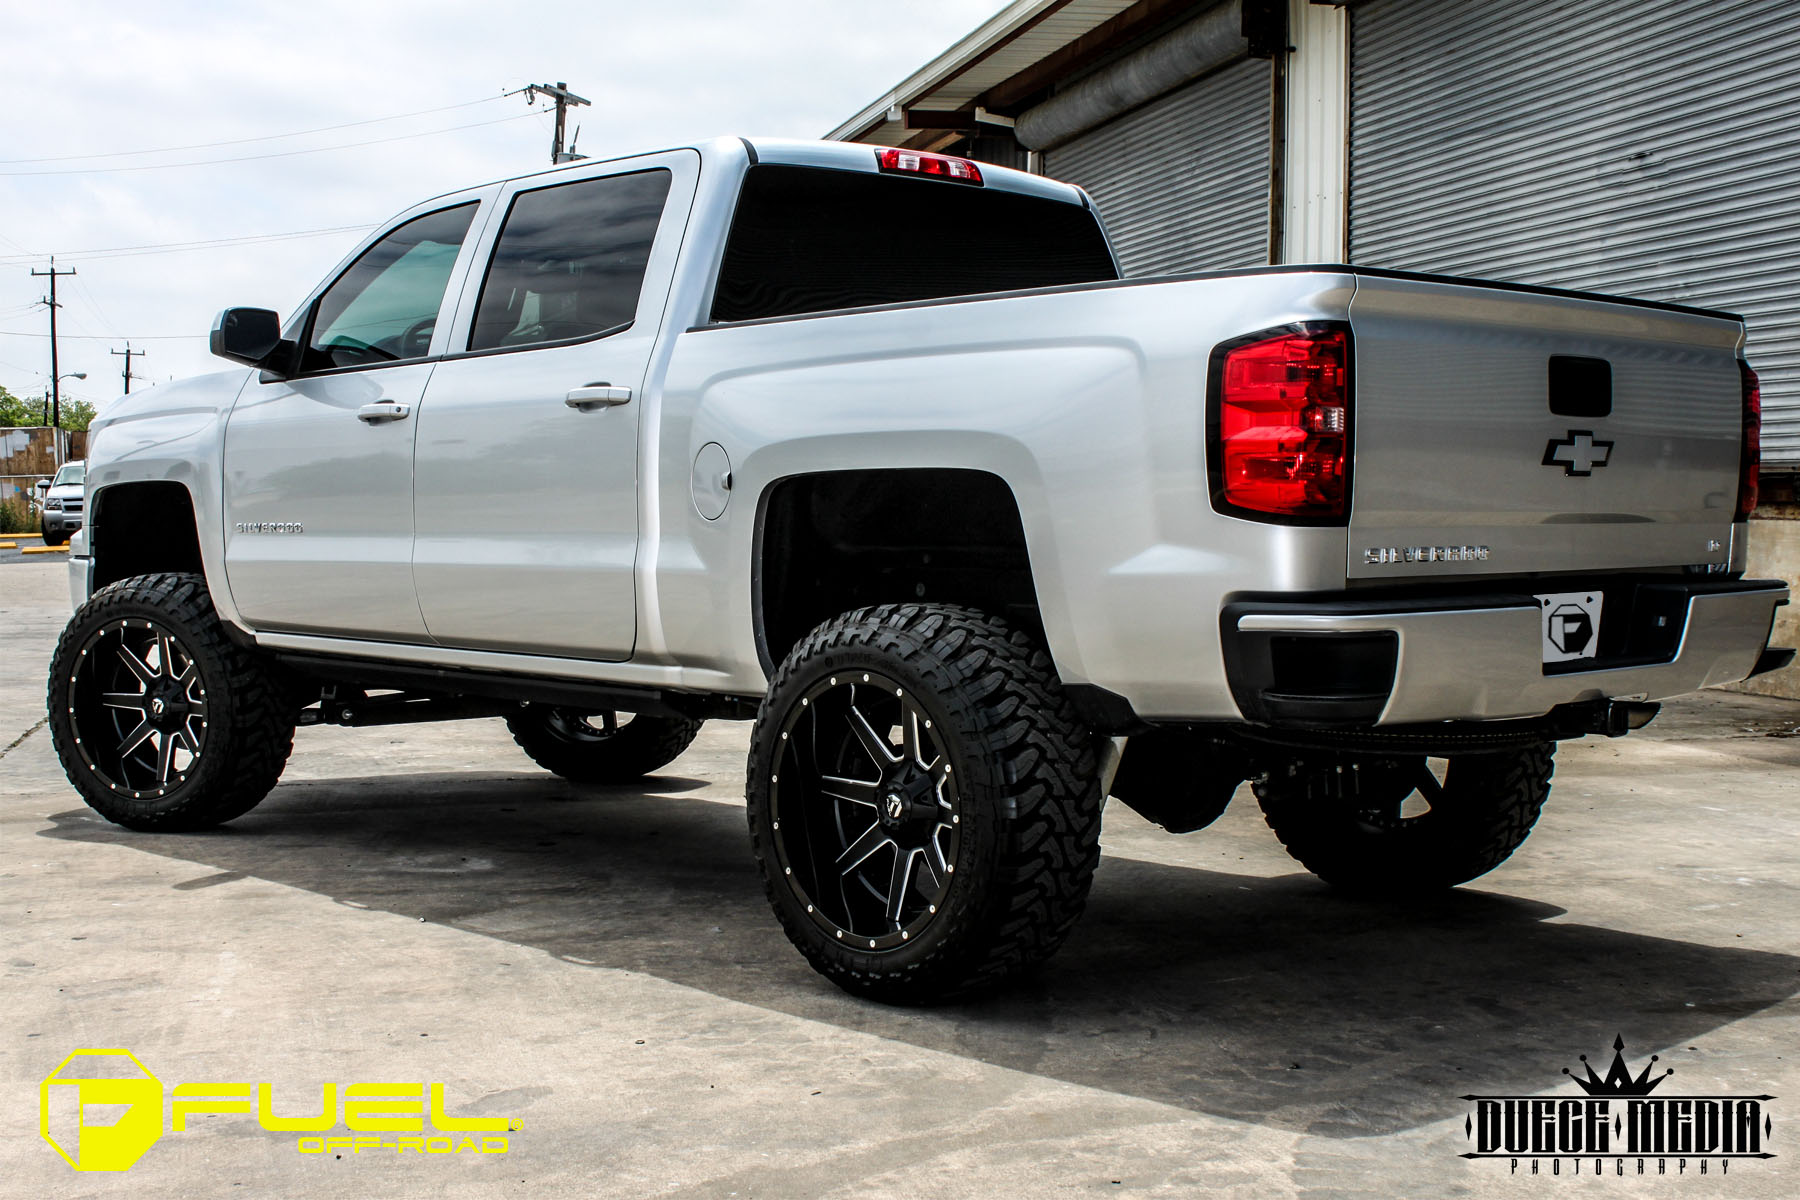 Chevrolet Silverado Maverick D262 Gallery Fuel Off Road Wheels furthermore QohwGv as well Thread 2008 Ford Crown Victoria P71 likewise Honda Vfr1200x Crosstourer 2013 likewise Index php. on fuse rims